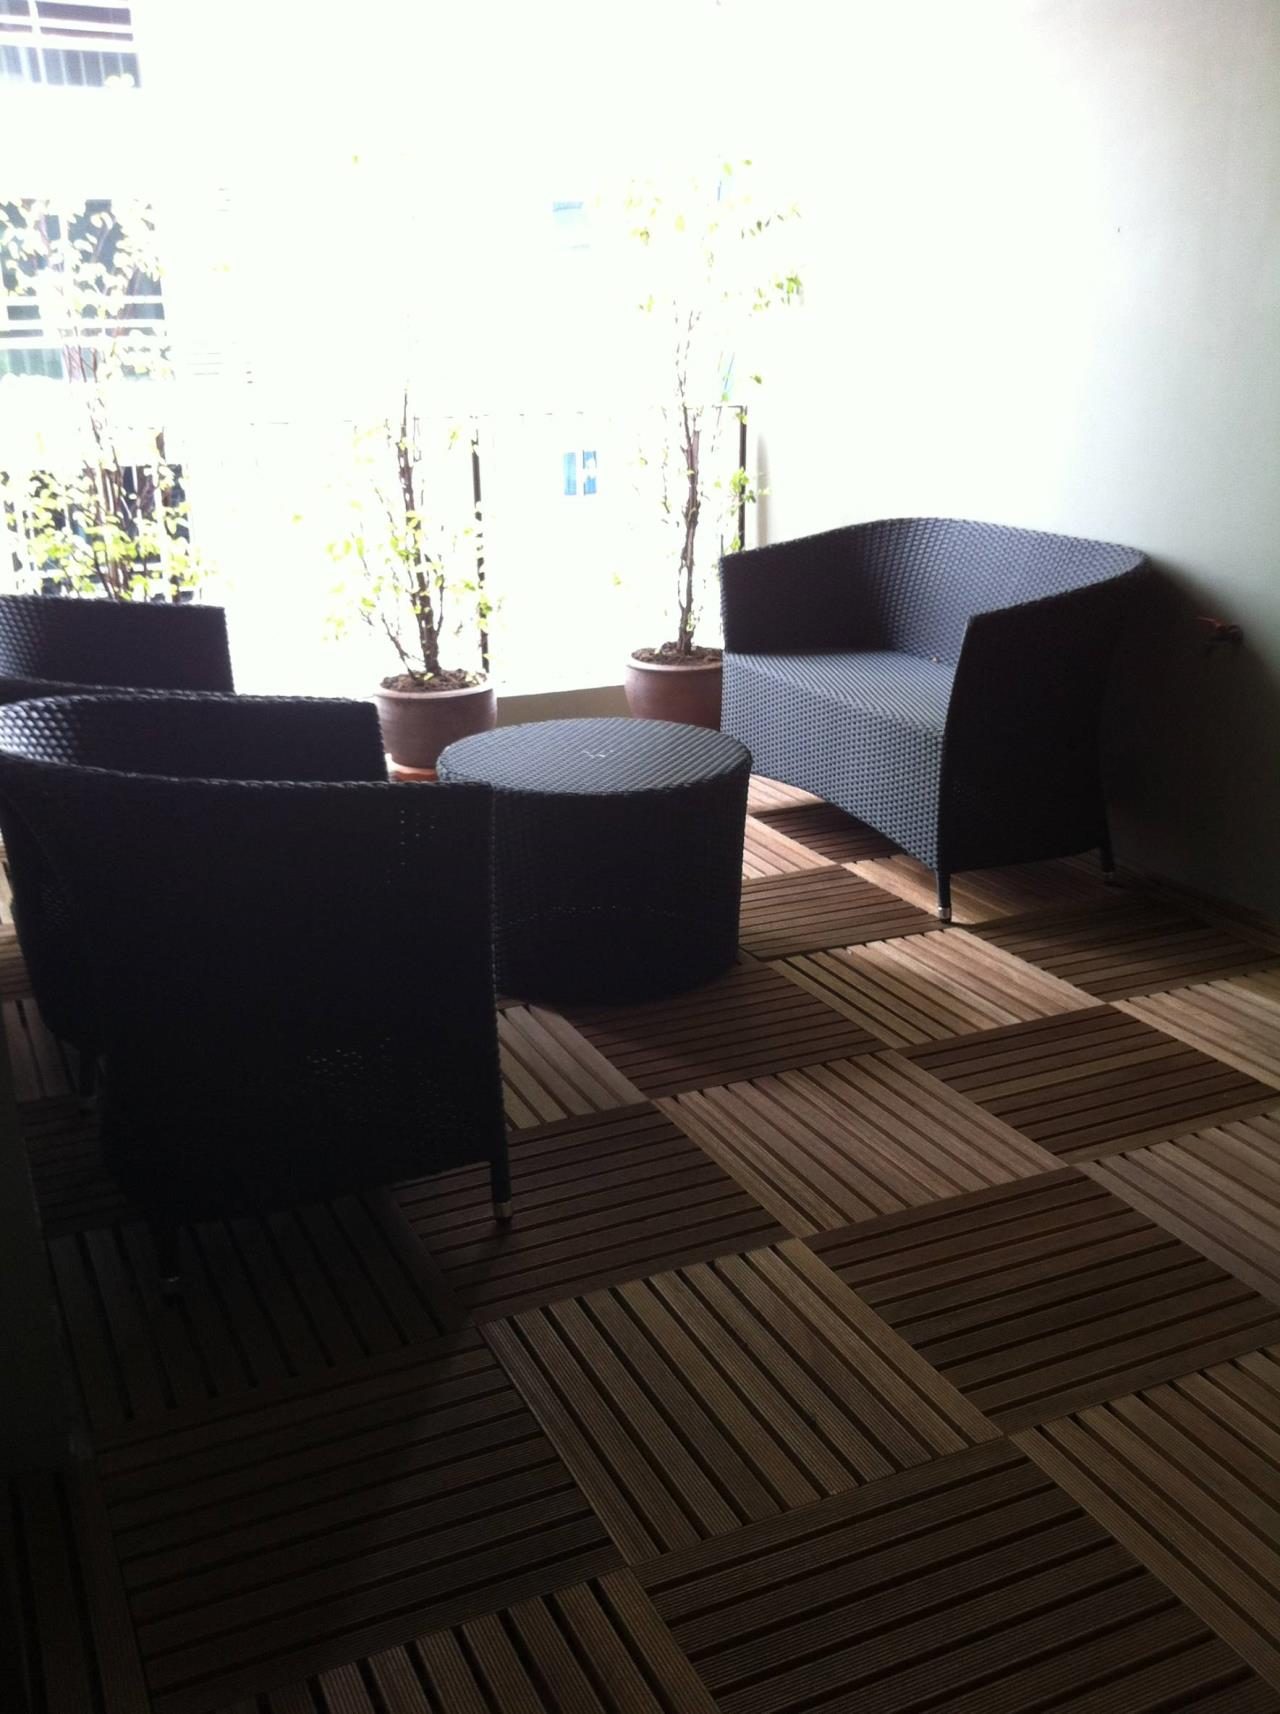 Professional One Service Agency's 3 bedroom at The Emporio Place BTS Phrompong 6